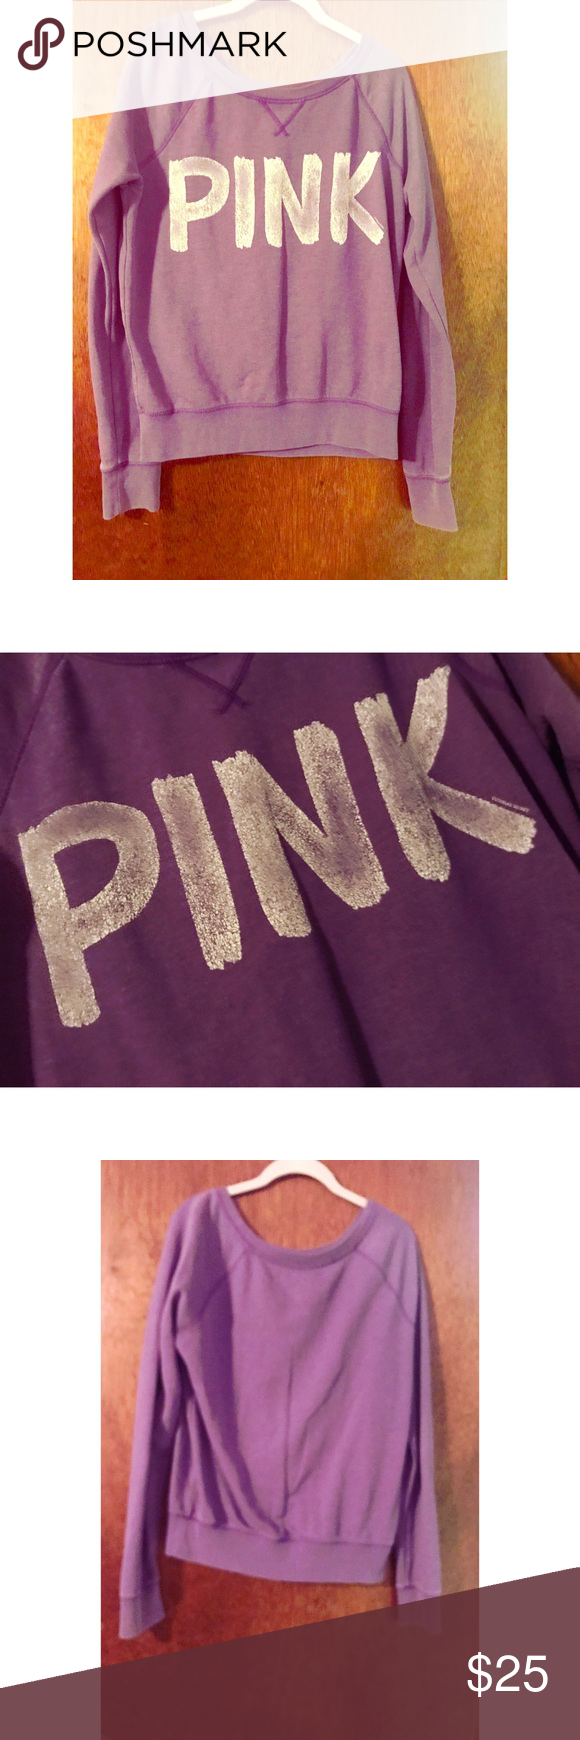 Victoria's Secret PINK Purple Sweater w/ Graphic | Pink purple and ...